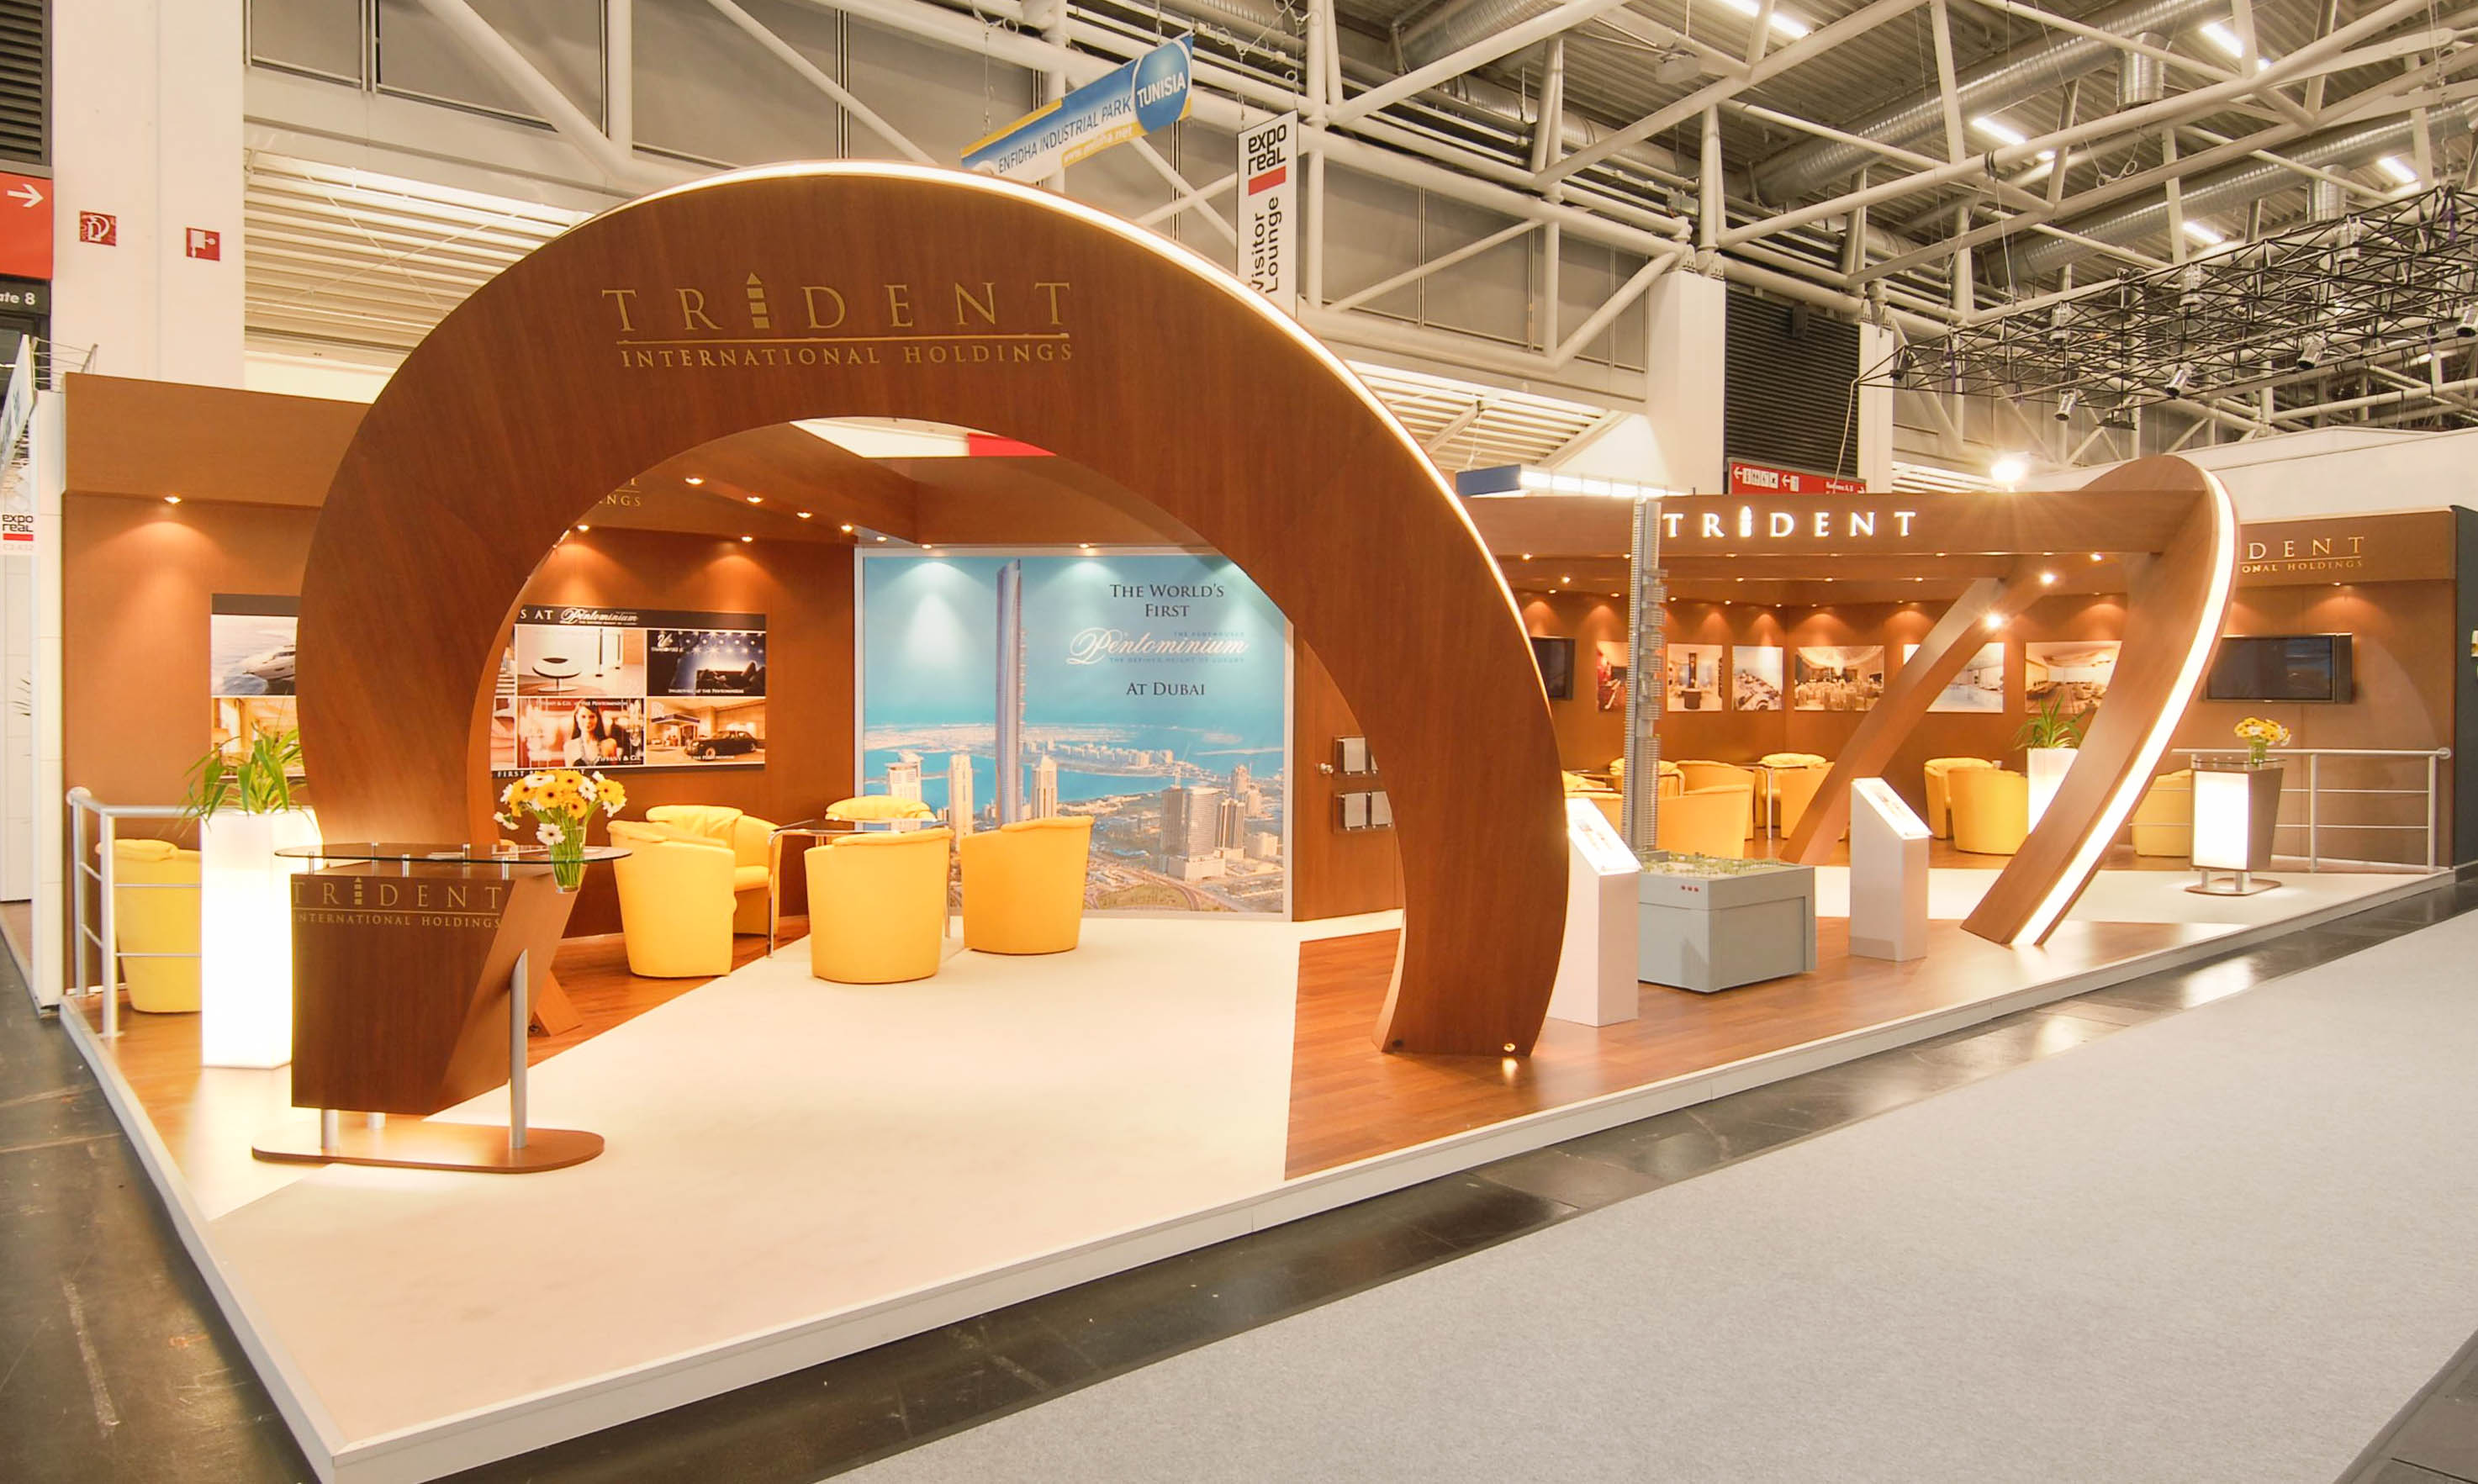 """""""Trident International Holdings exhibition stand"""""""